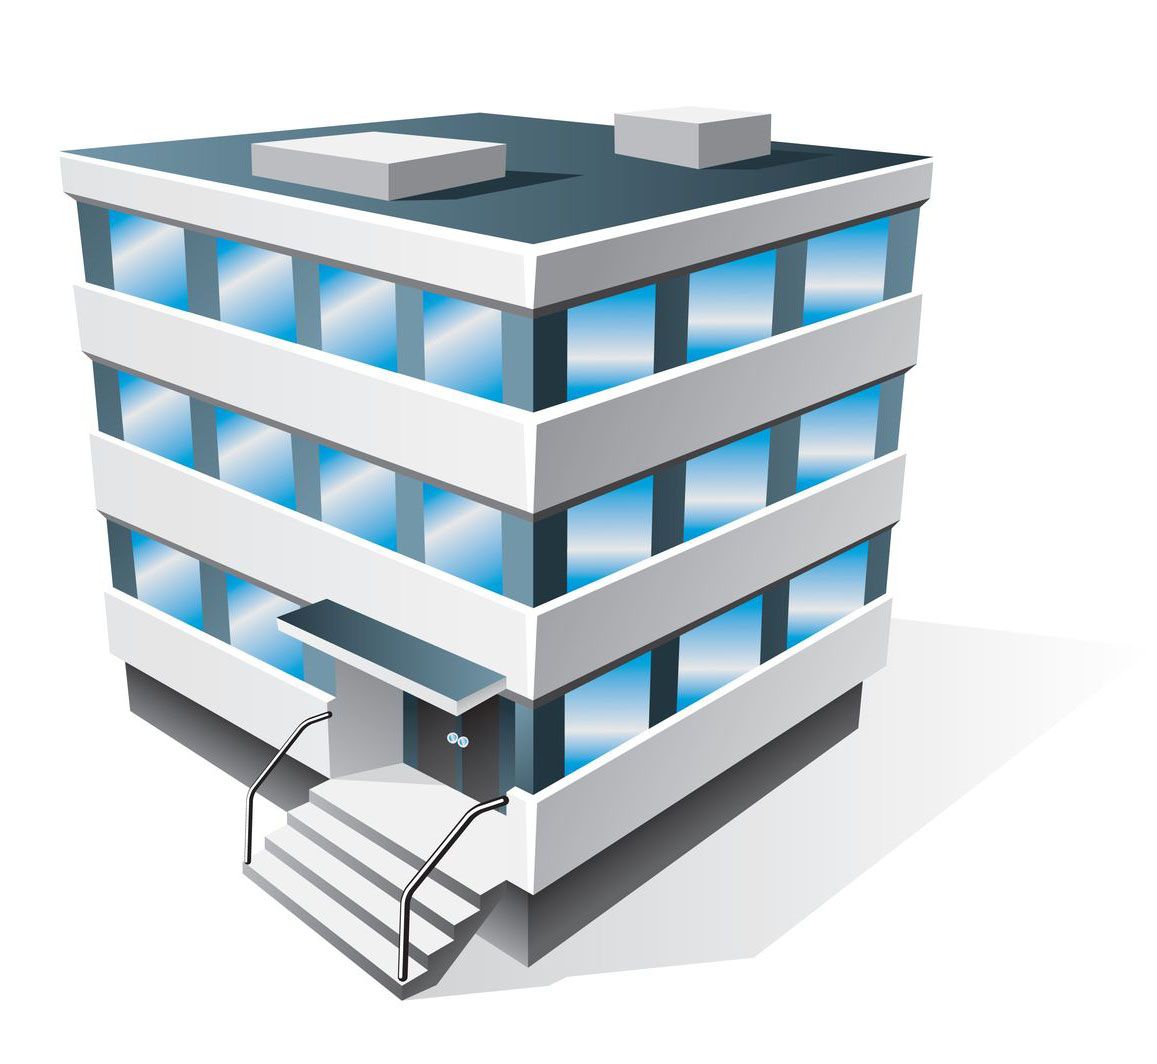 13847886 - four office buildings icons in cartoon style